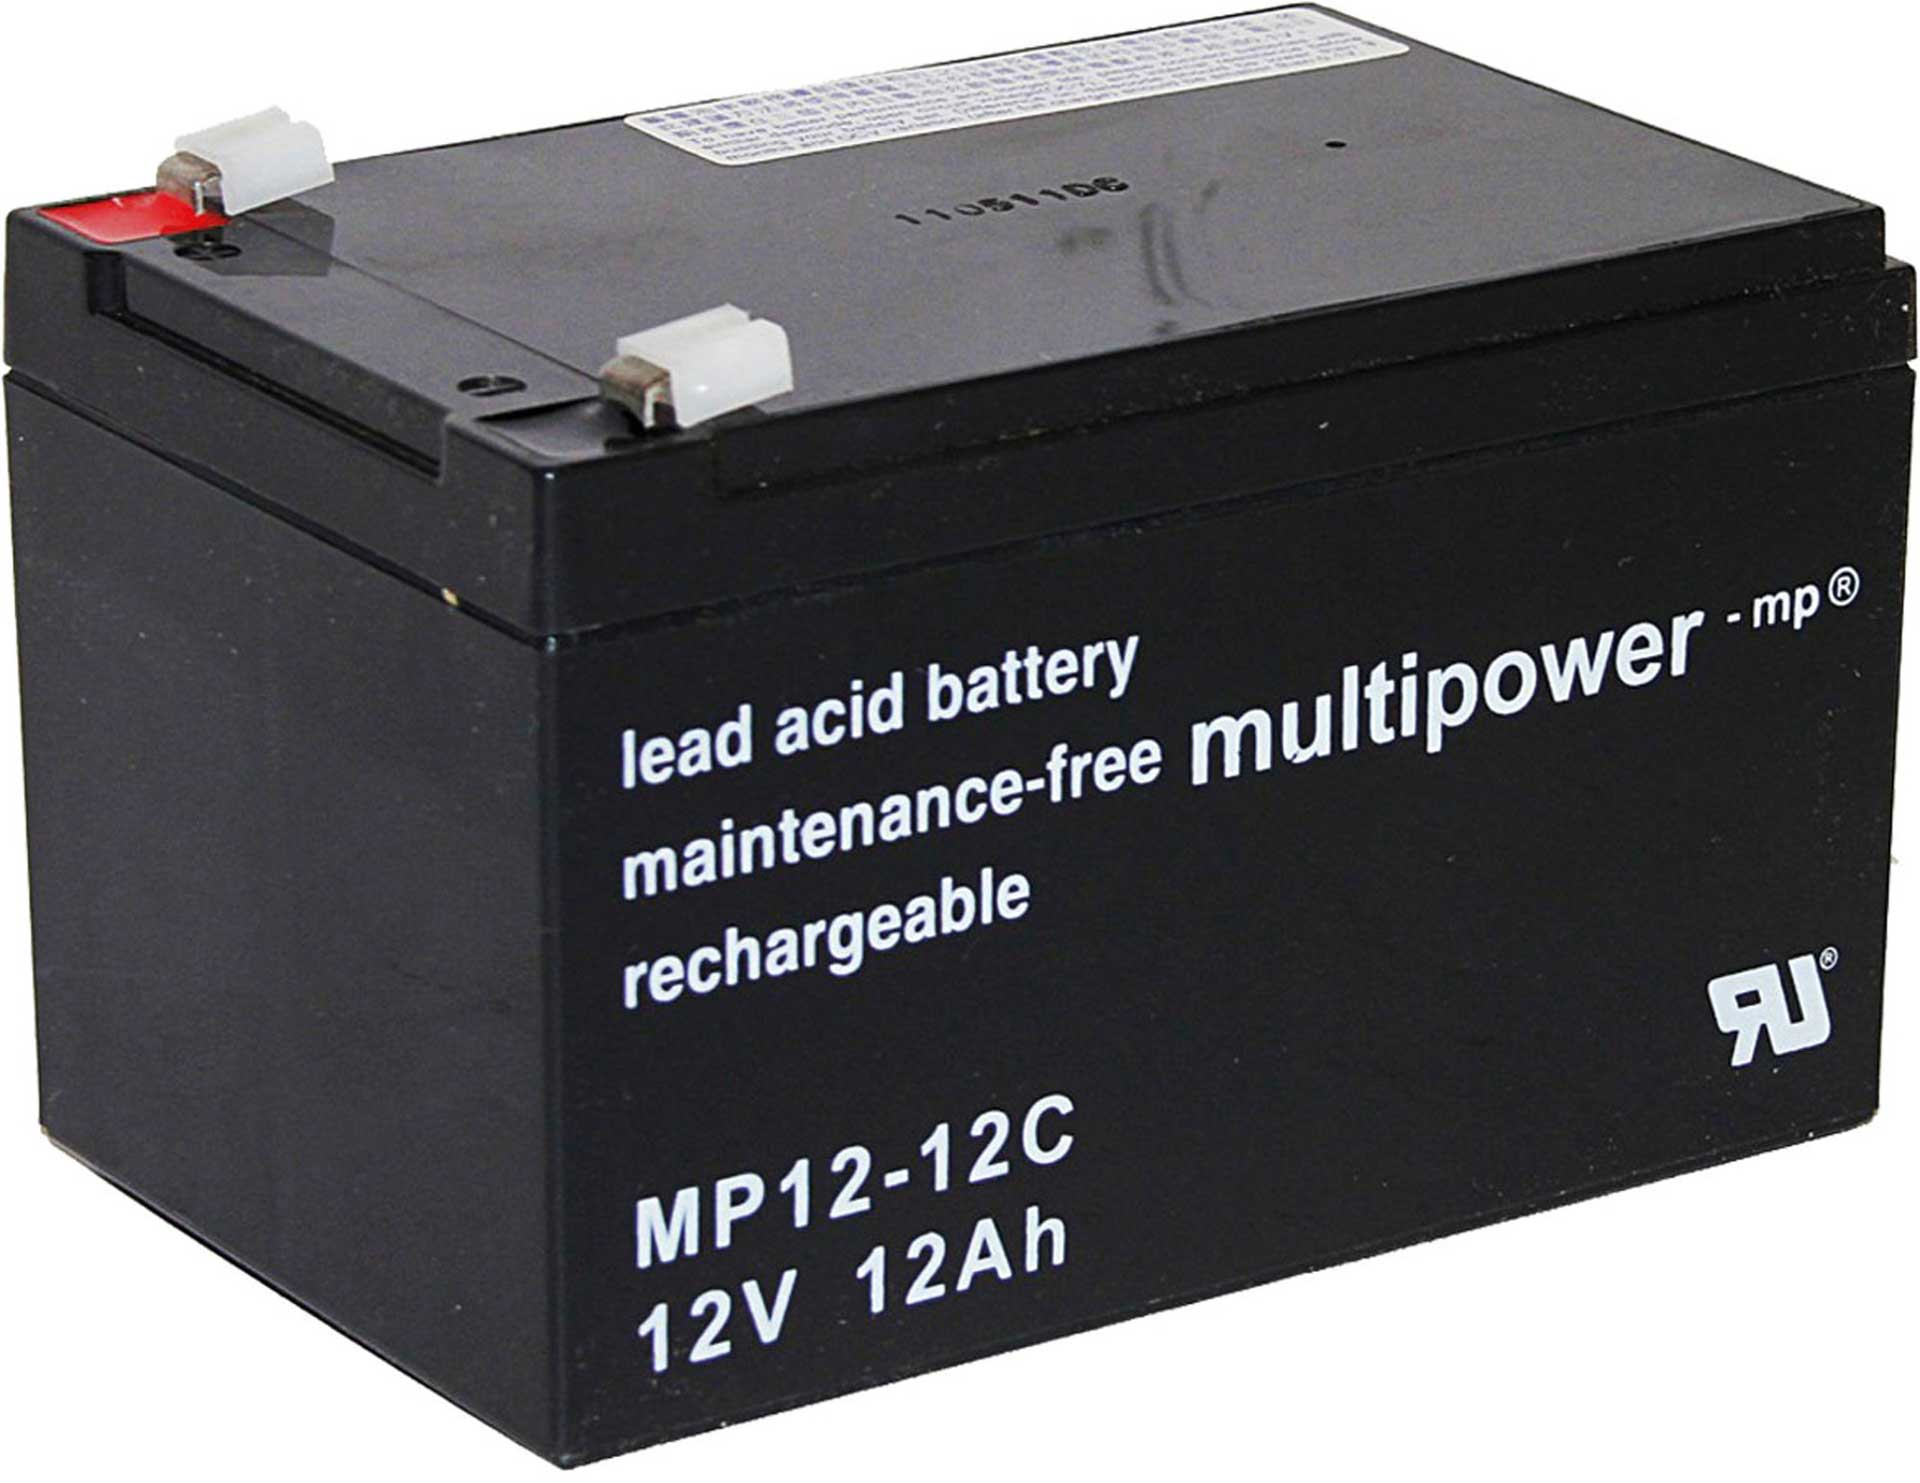 MULTIPOWER LEAD ACID BATTERY MP12-12C PB 12V / 12A H CYCLE FASTON 6,3 151/98/98MM